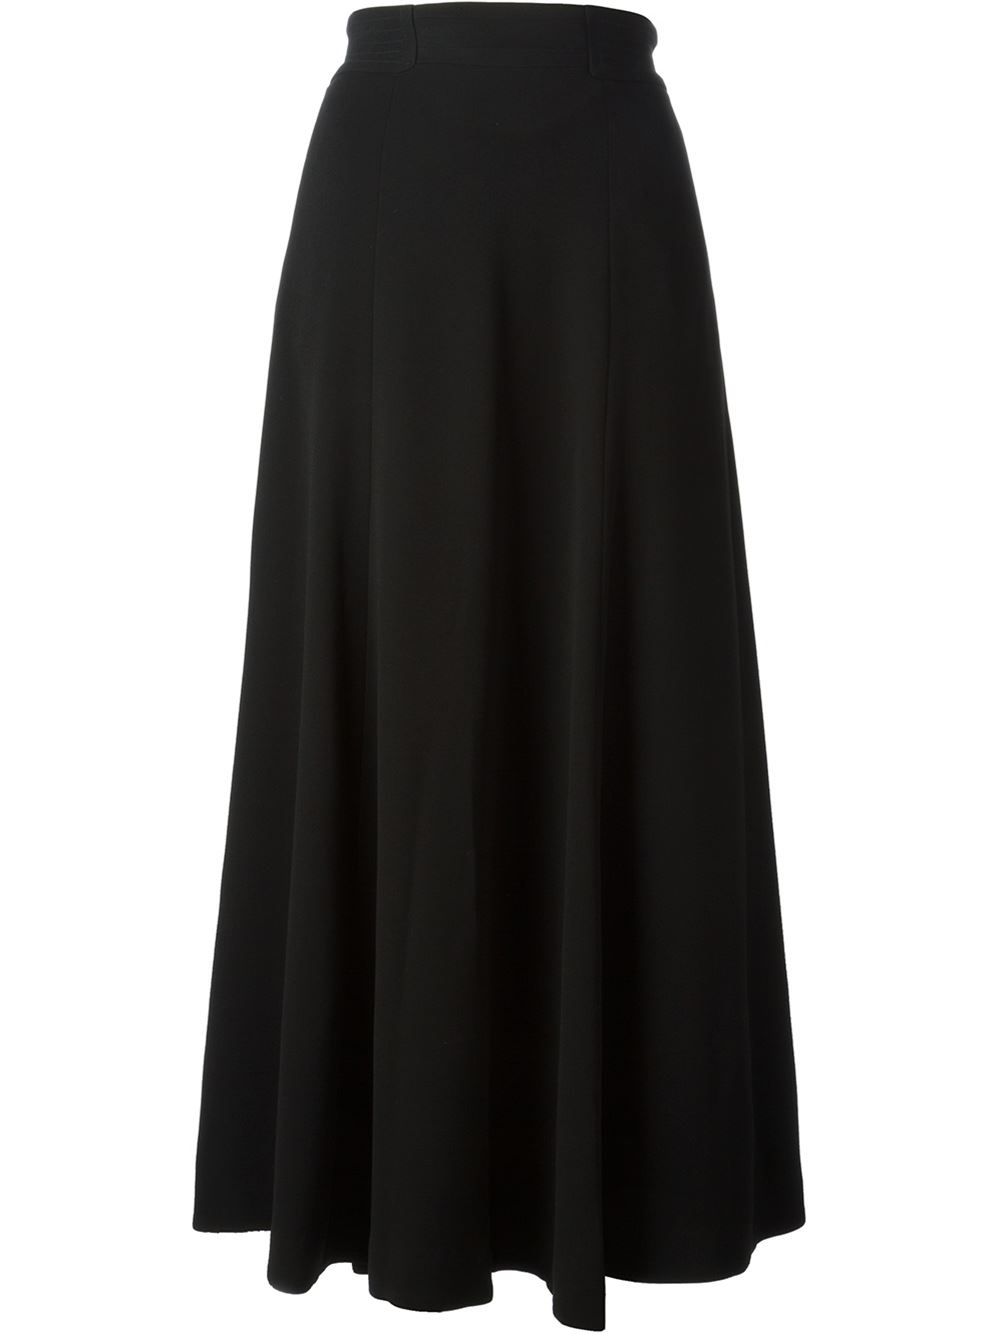 Tory burch Long A-Line Skirt in Black | Lyst